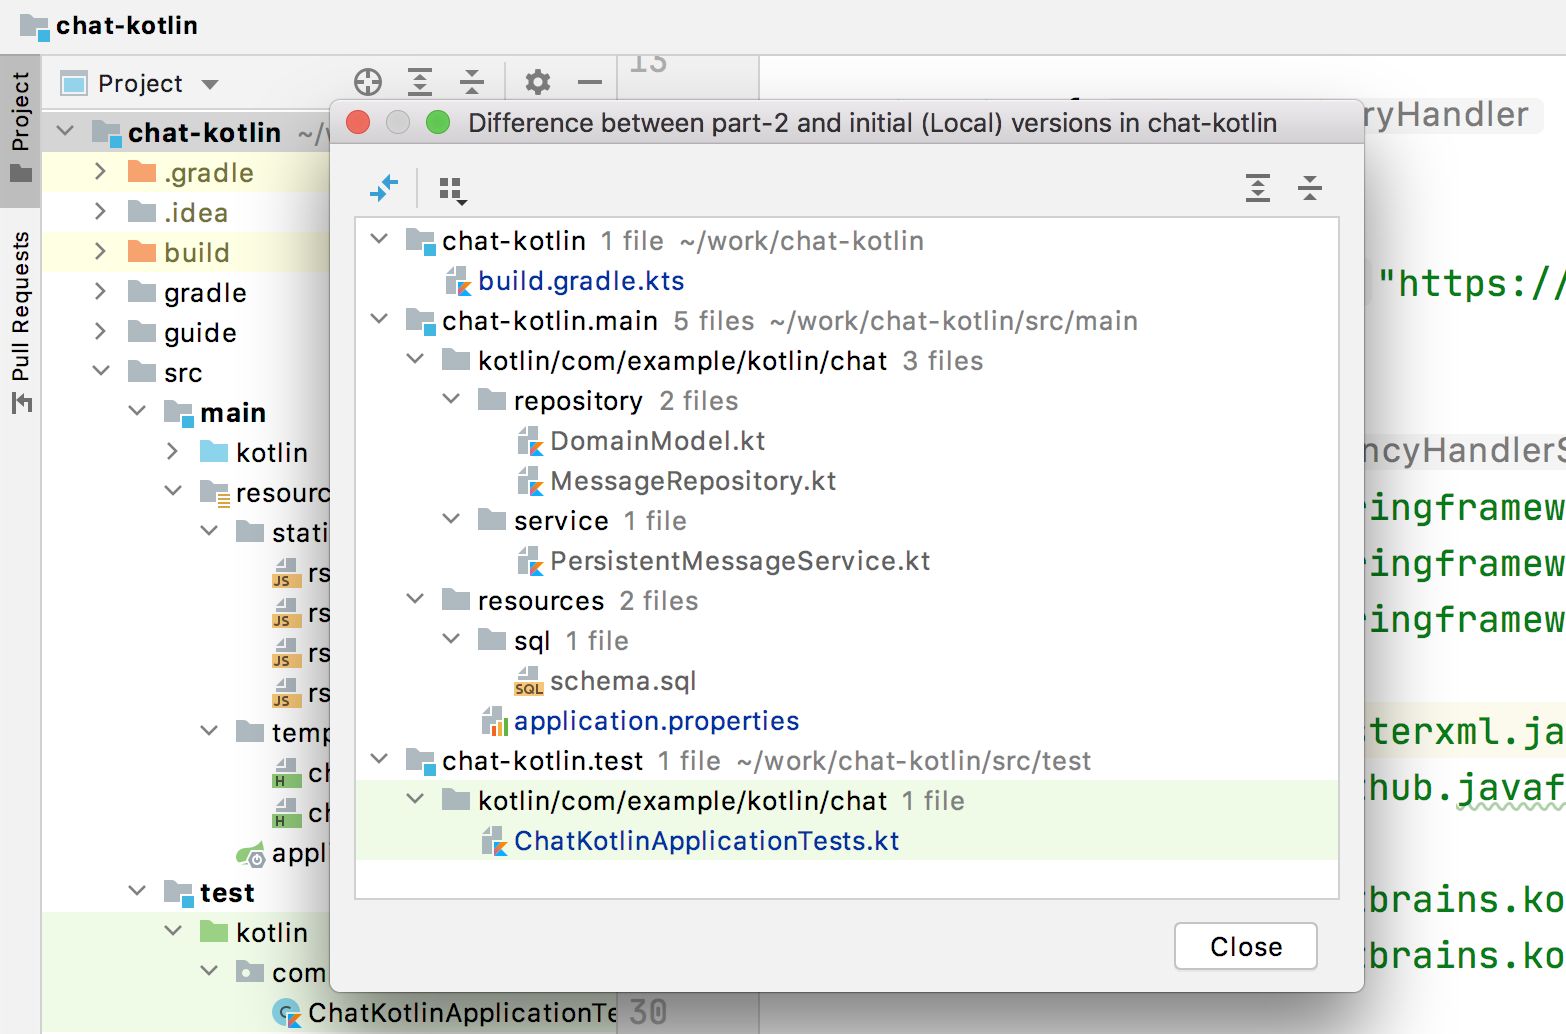 intellij git compare with branch diff